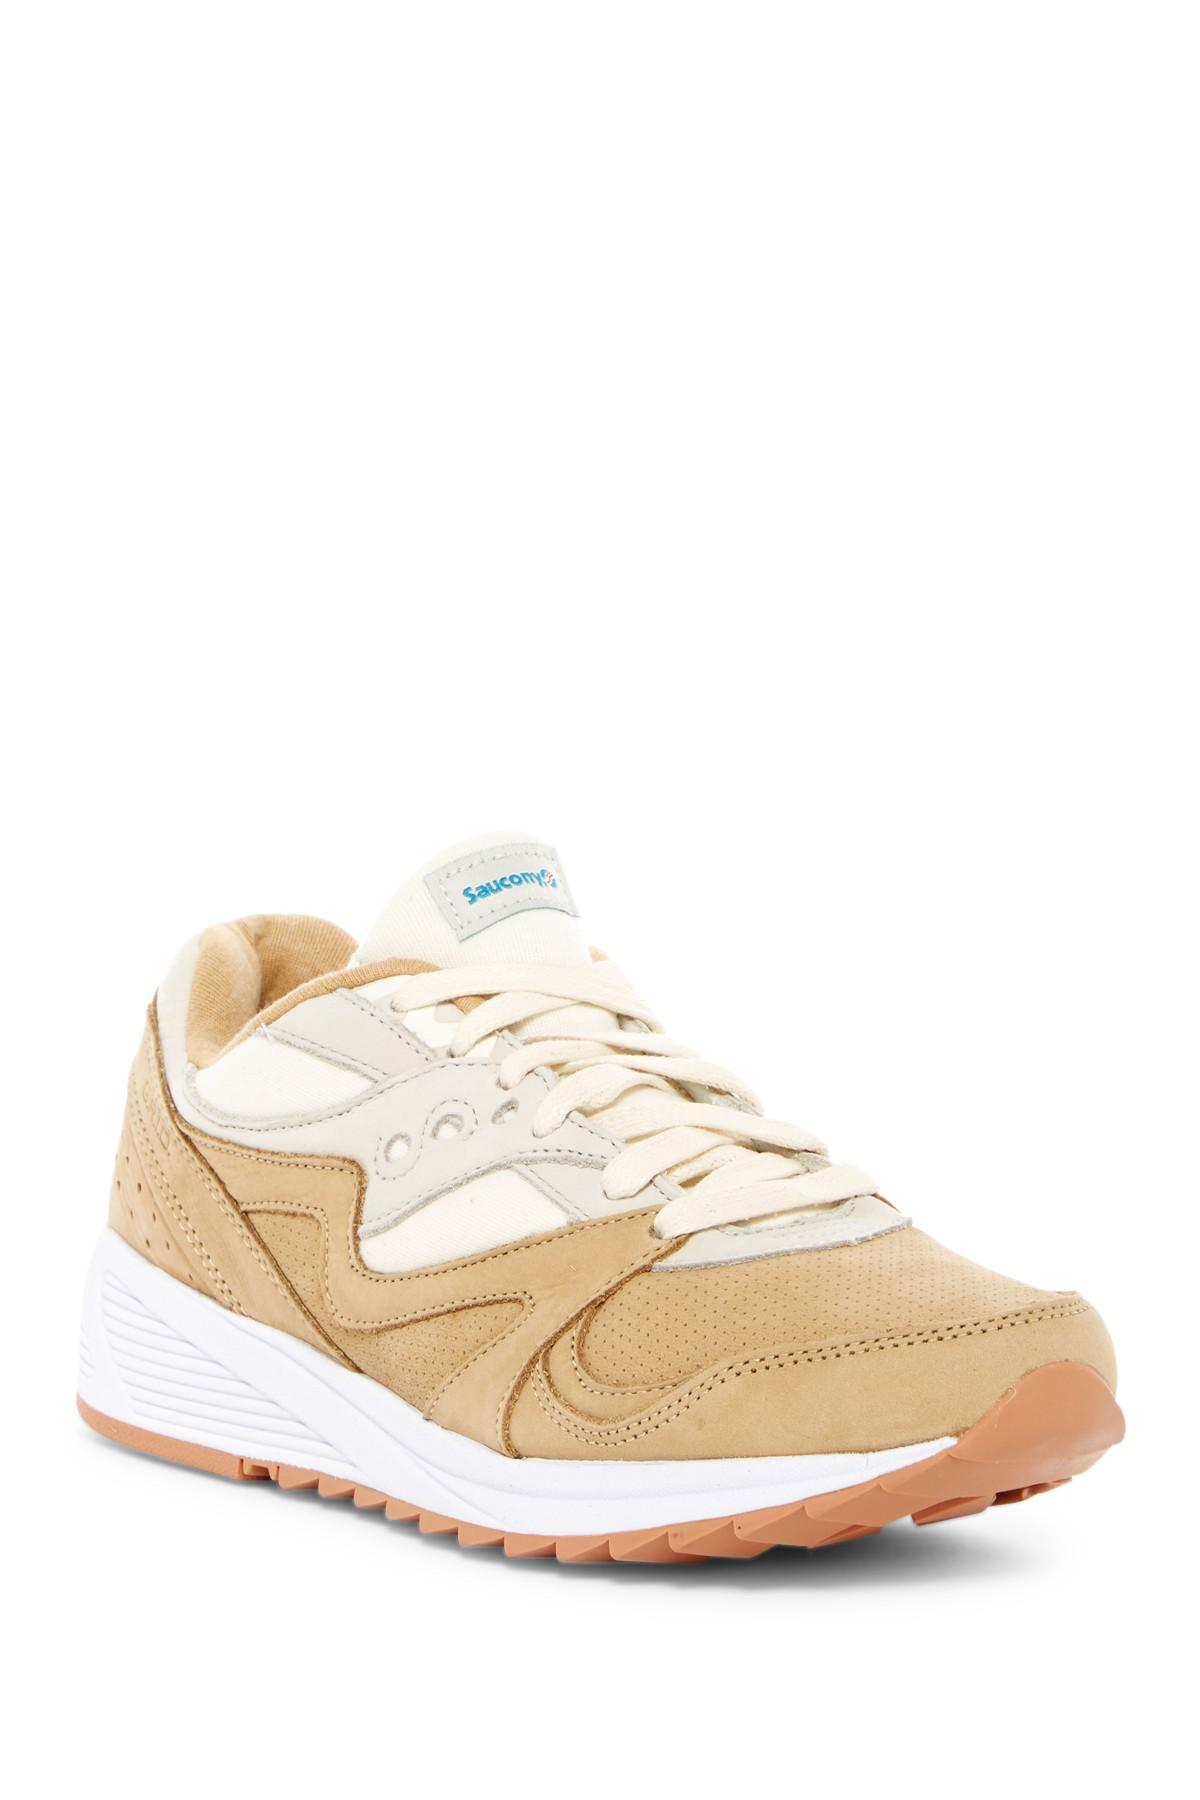 c375a6a539eb Lyst - Saucony Grid 8000 Sneaker